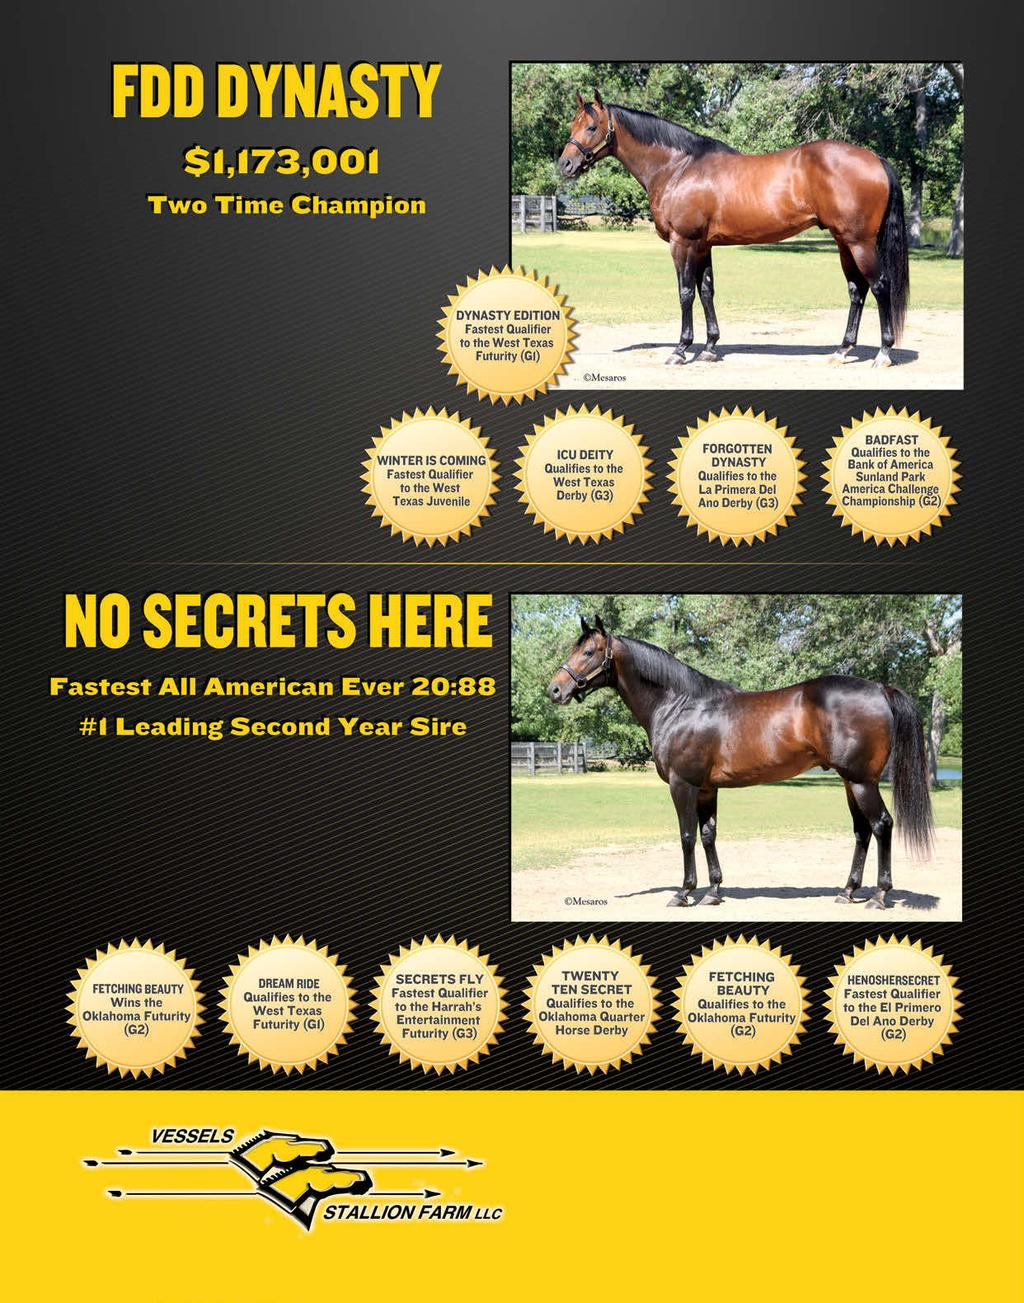 Sire of 2.6 Million In Earners Sire of Multiple Graded Stakes Qualifiers Owned by FDD DYNASTY SYNDICATE Limited number of 2013 season available Call The Farm Today! No.